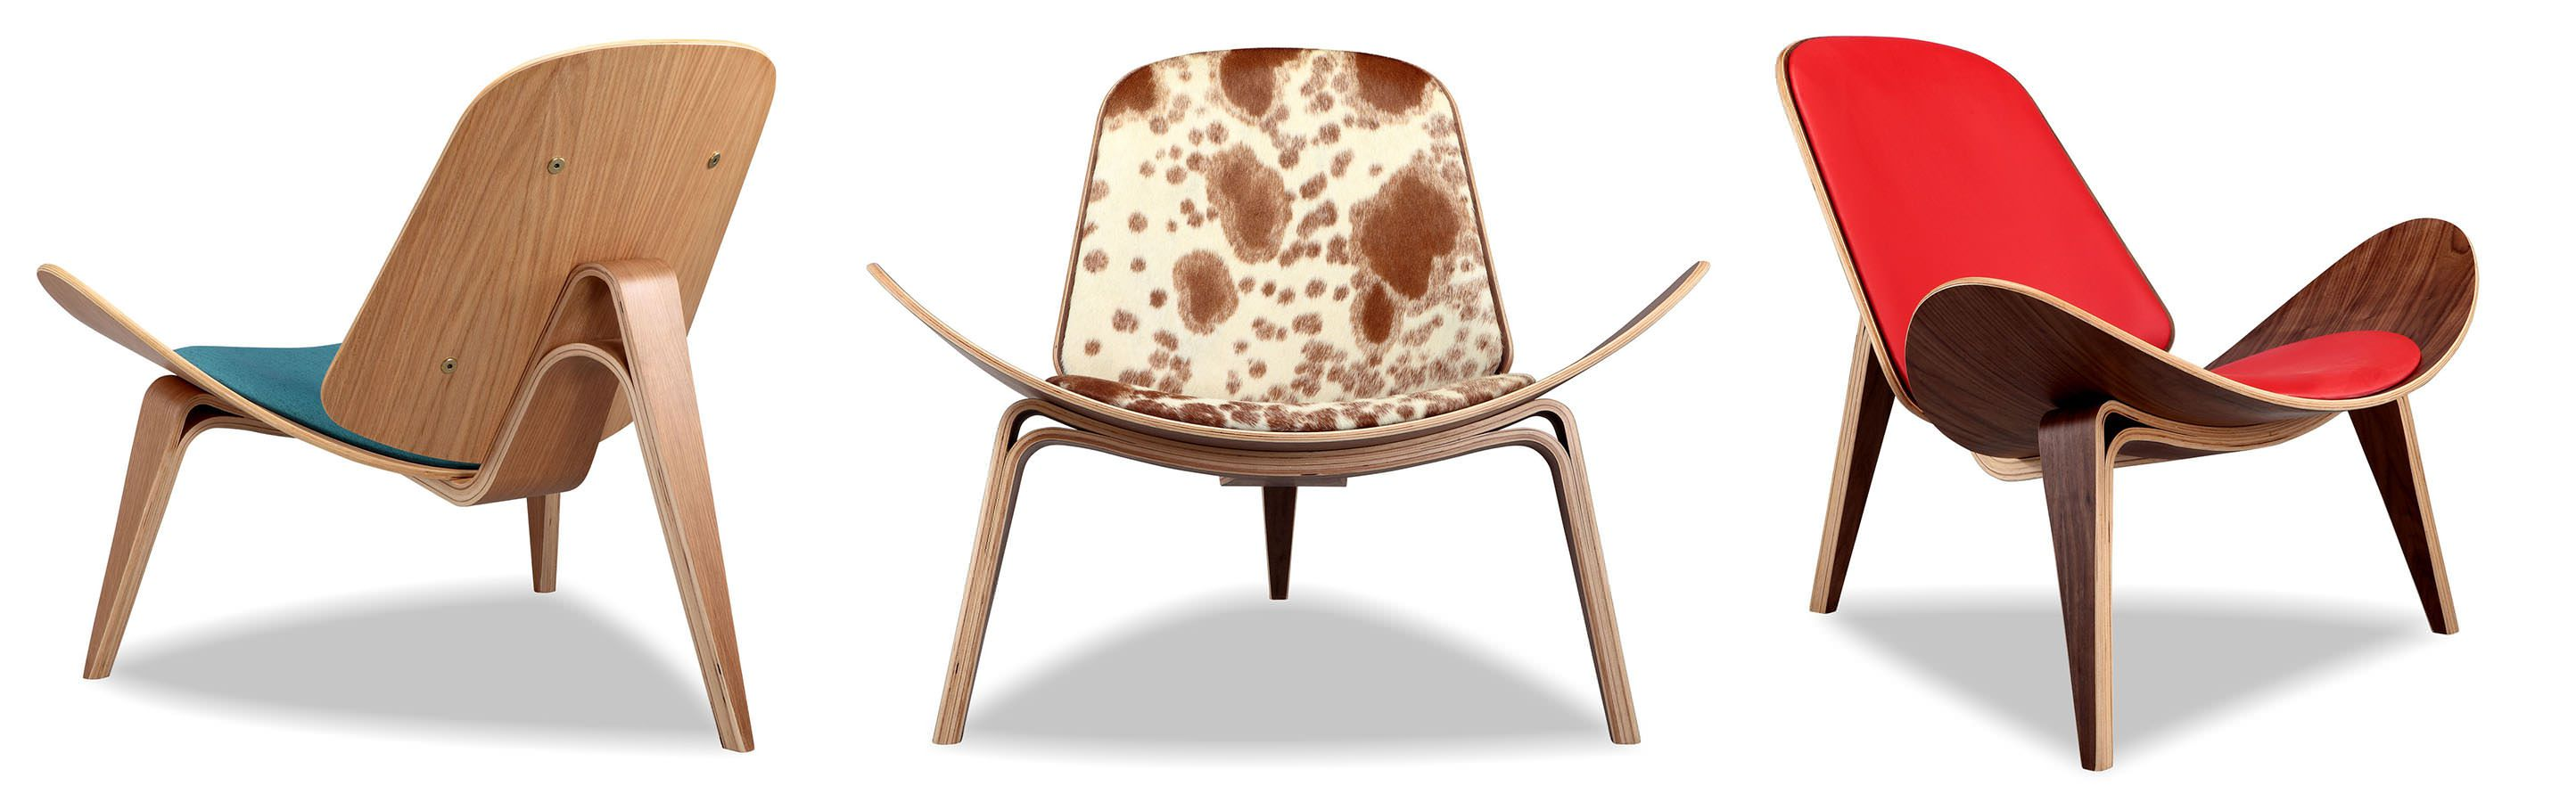 Tripod Shell Plywood Mid Century Modern Chair